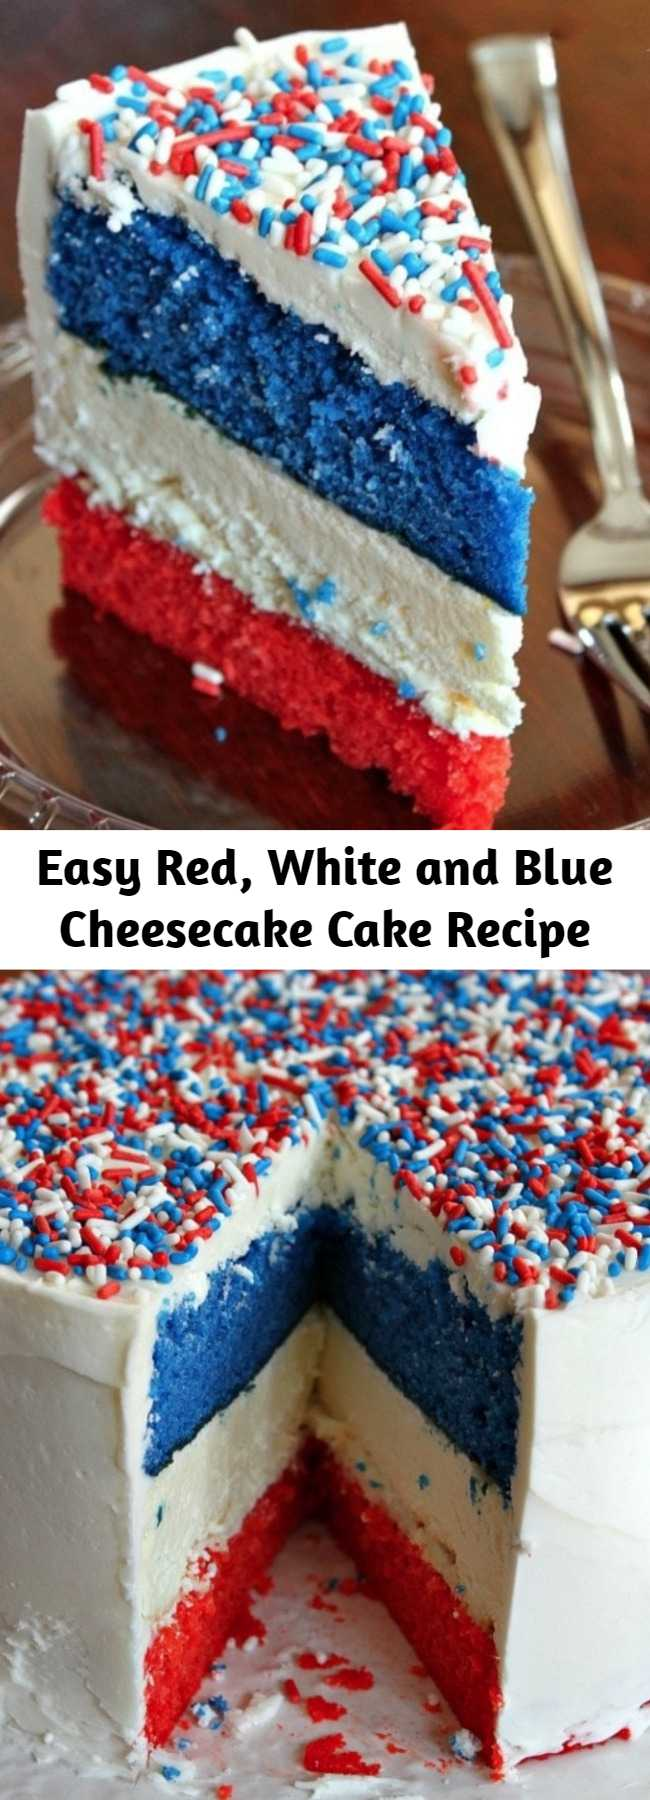 Easy Red, White and Blue Cheesecake Cake Recipe - This is an incredibly festive cake for summer holiday parties! It's easy to make (I promise), and you might just impress people at a summer party if you show up with a cake like this Red, White and Blue Cheesecake Cake.